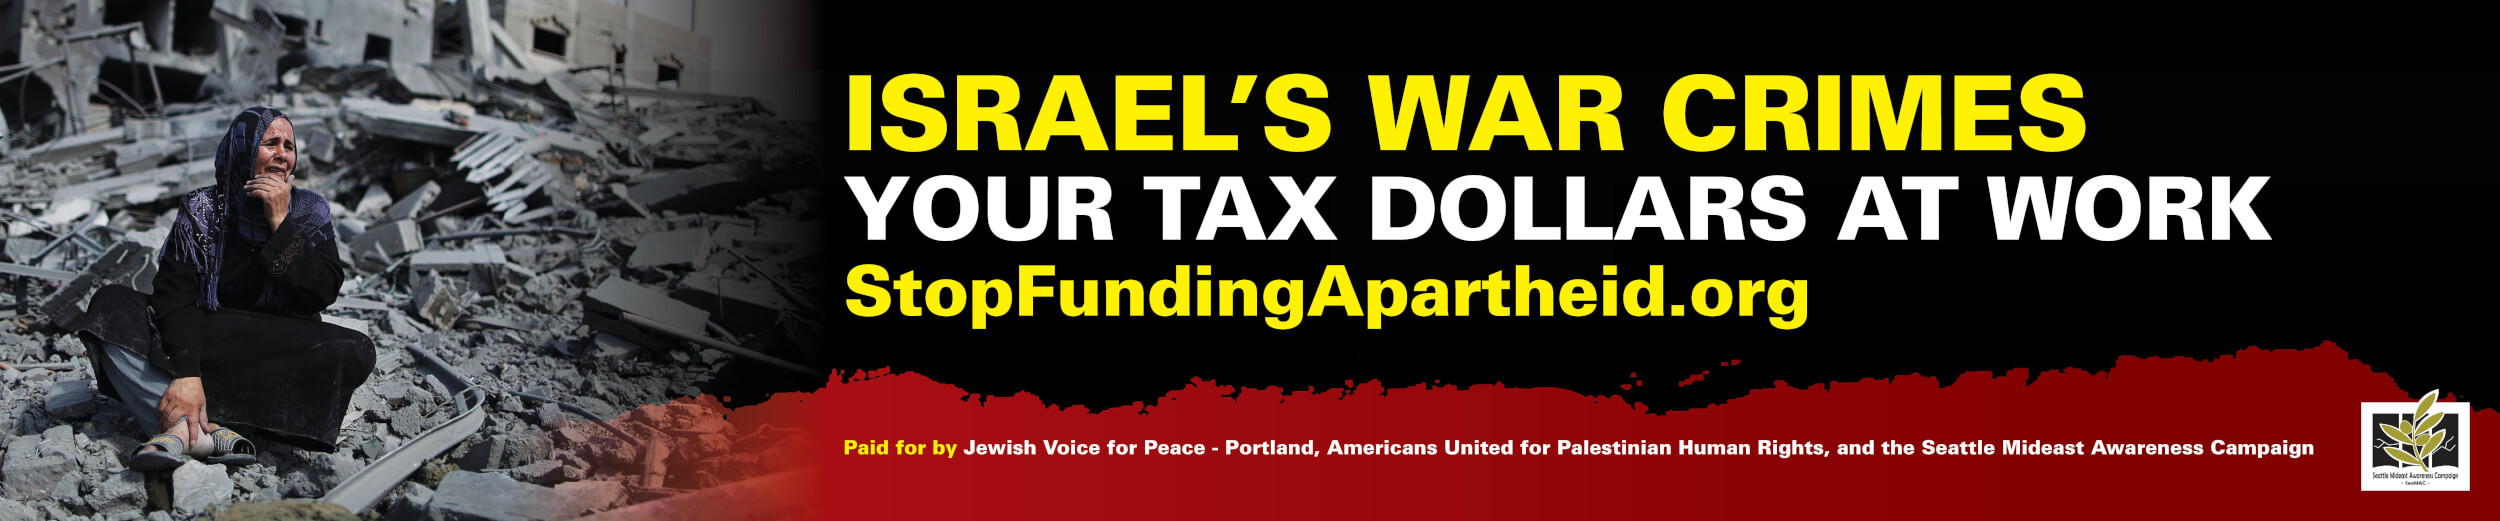 Seattle Mideast Awareness Campaign (SeaMAC) ad on Portland's TriMet buses with the slogan ISRAEL'S WAR CRIMES: YOUR TAX DOLLARS AT WORK. (graphic: SeaMAC)